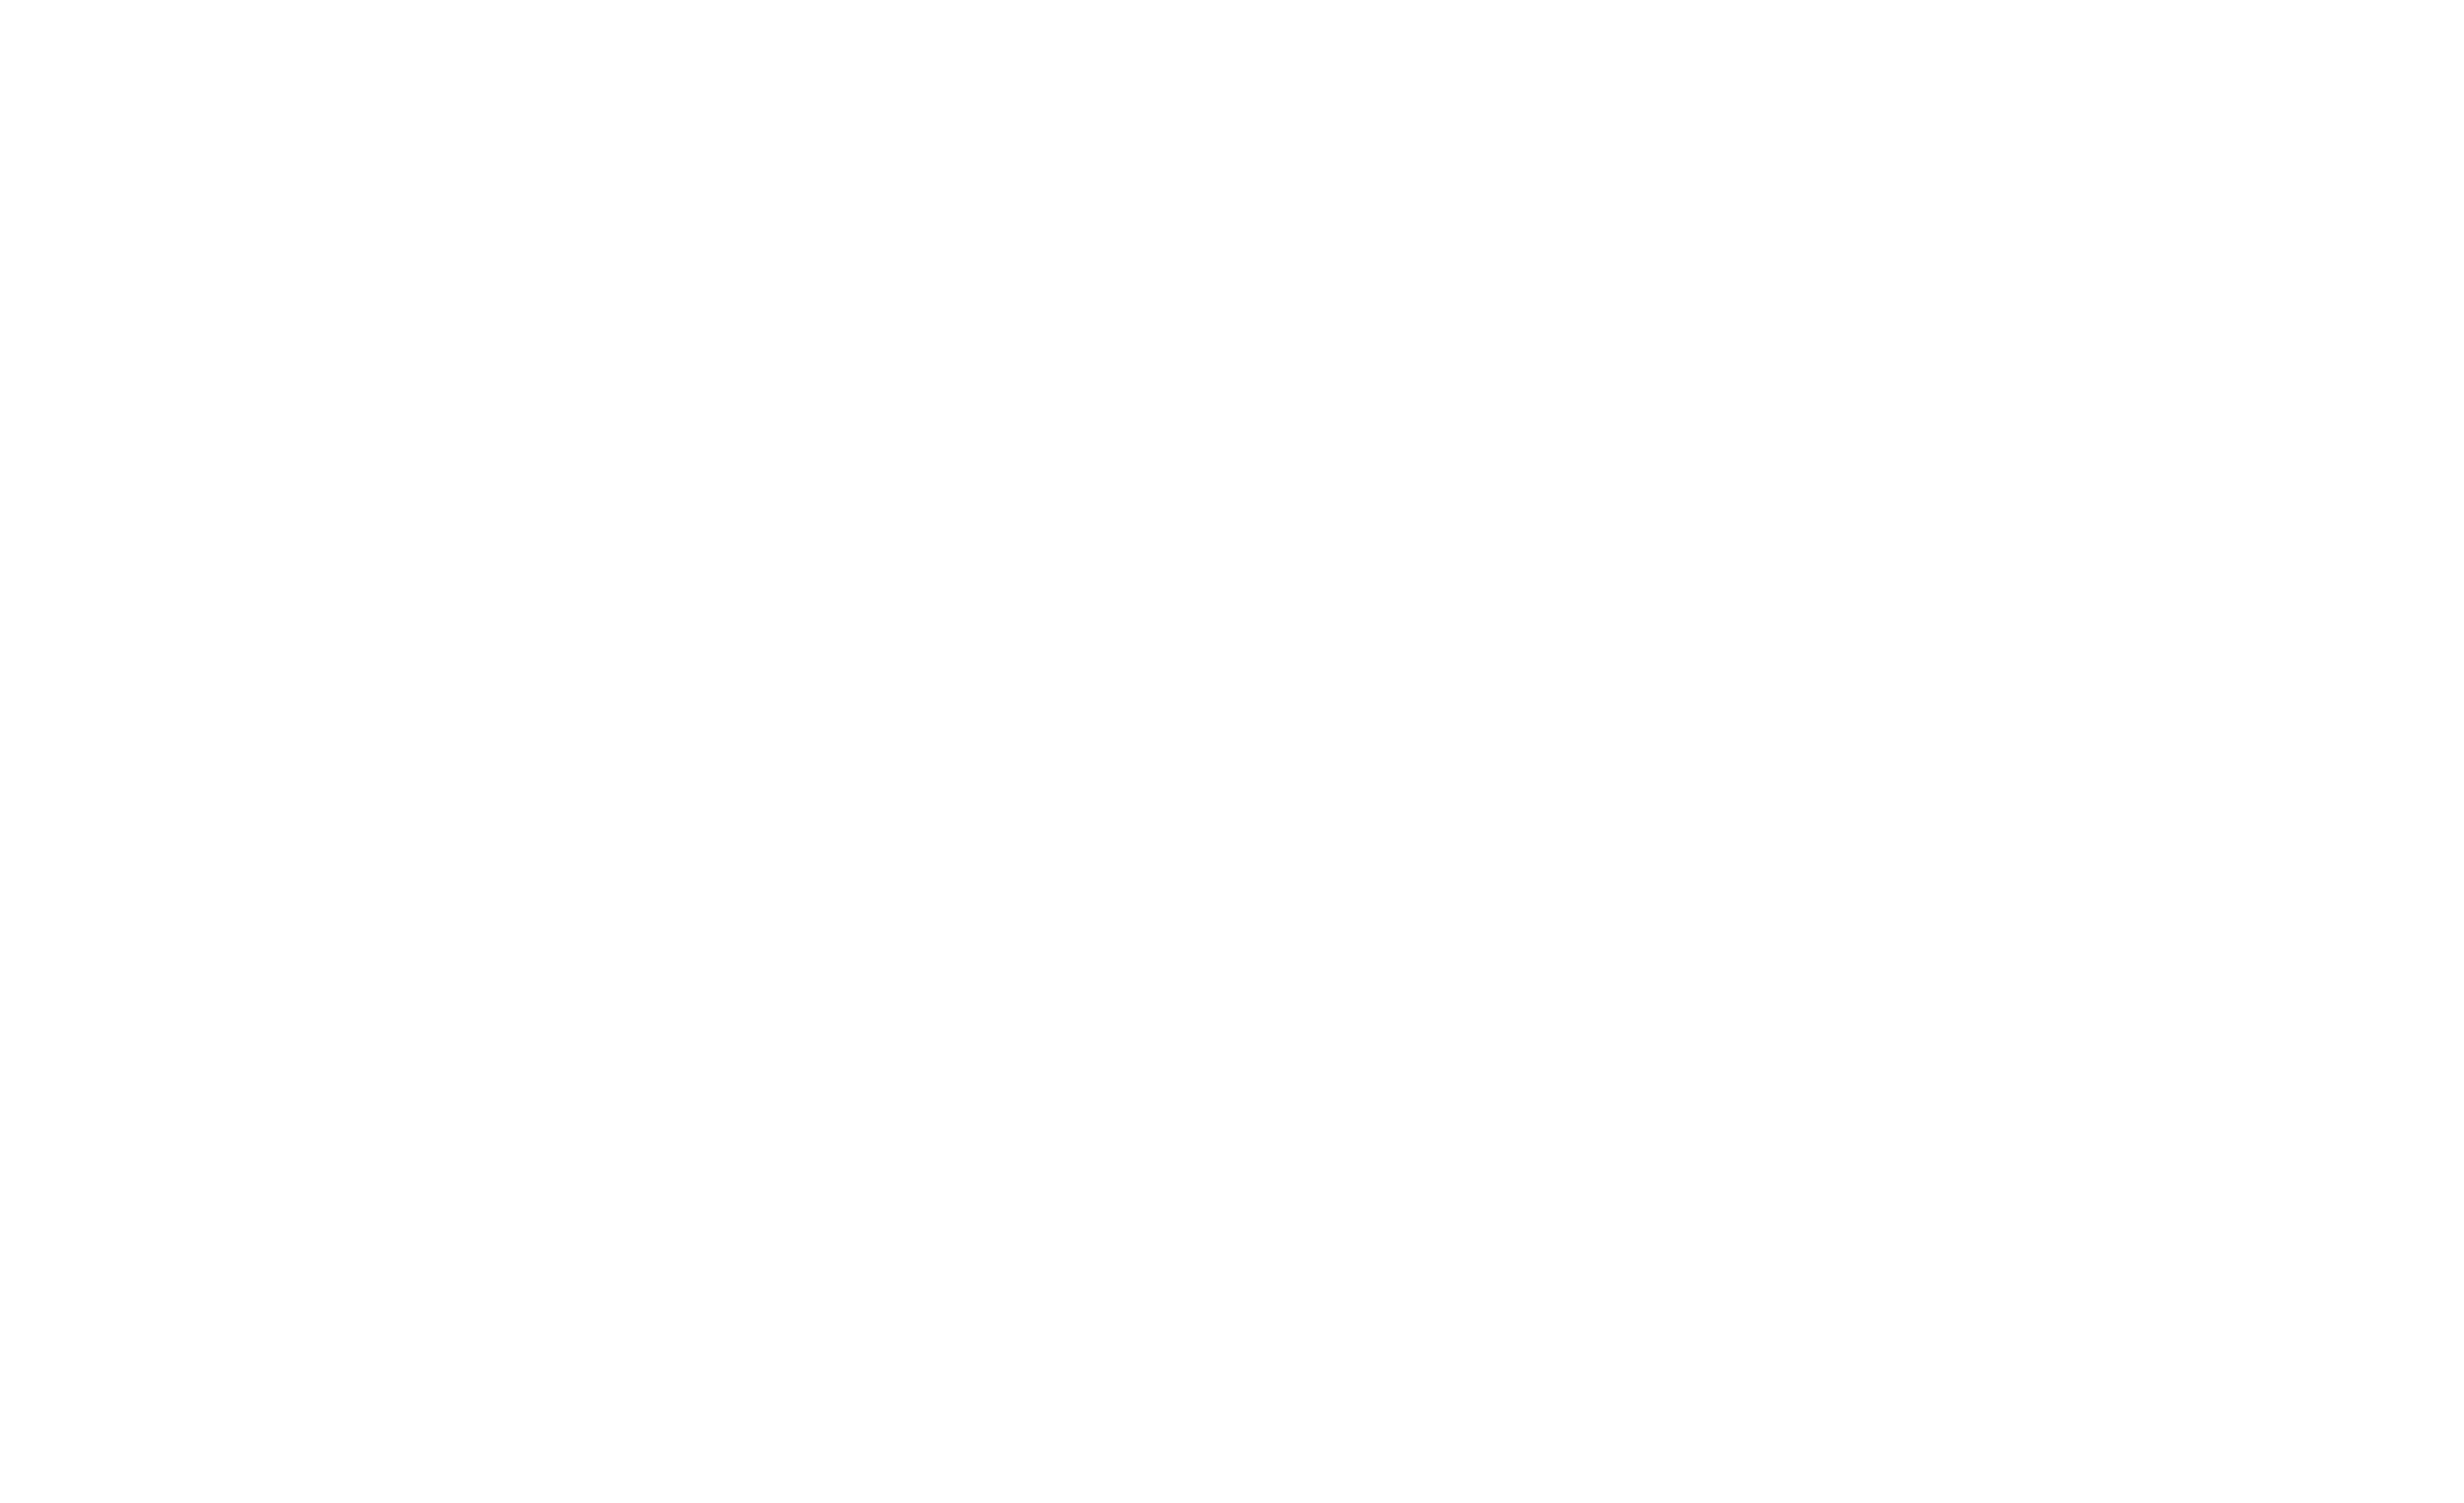 Fortune Global